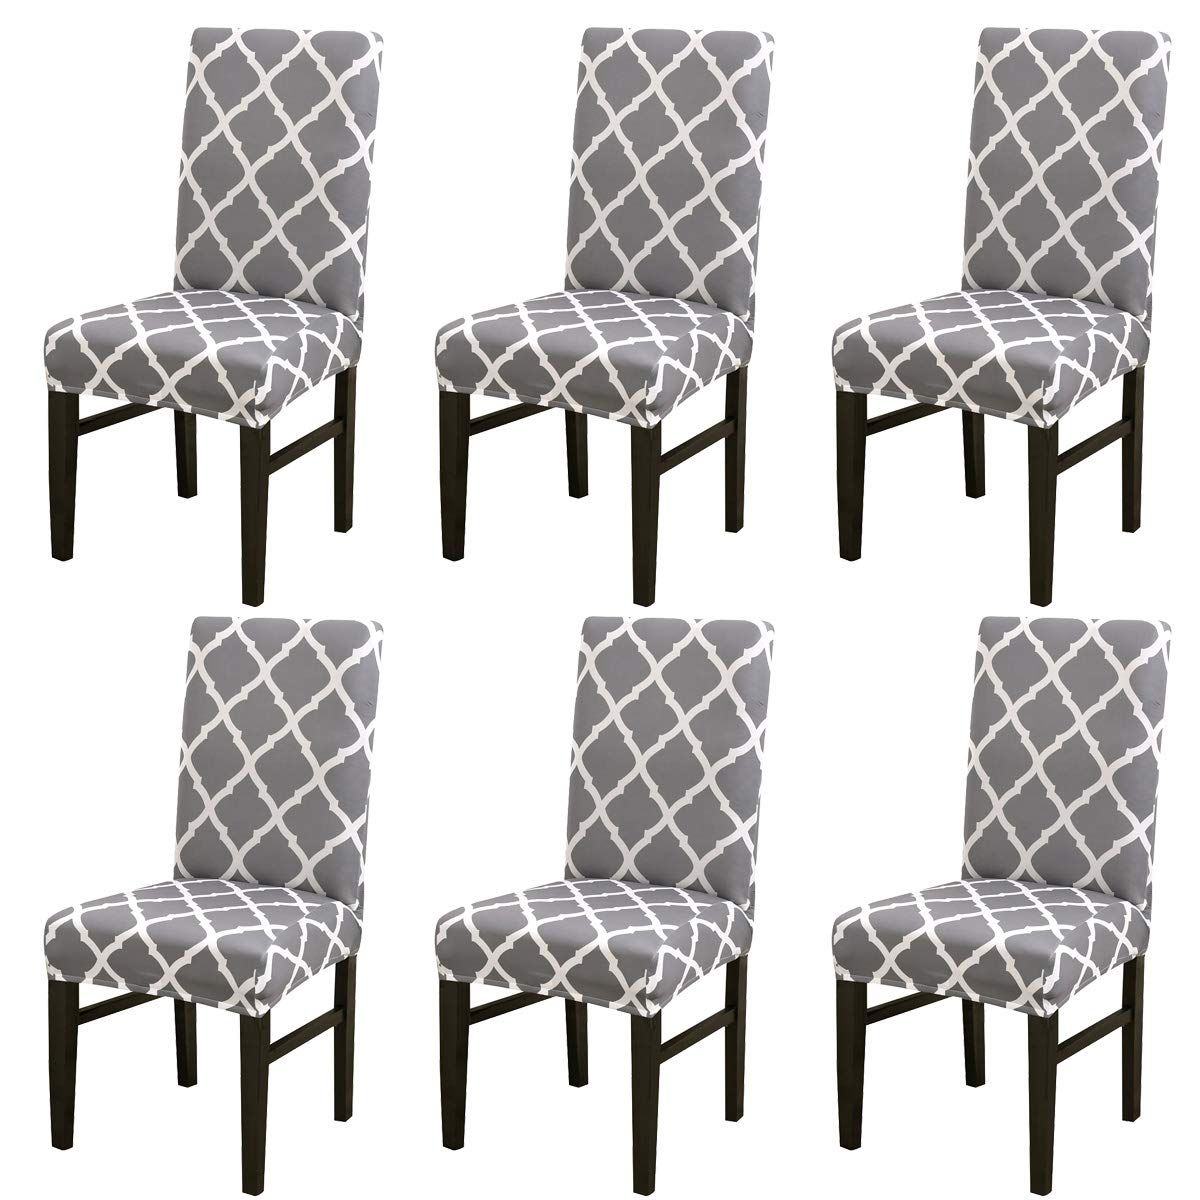 Chair Protective Cover Slipcover